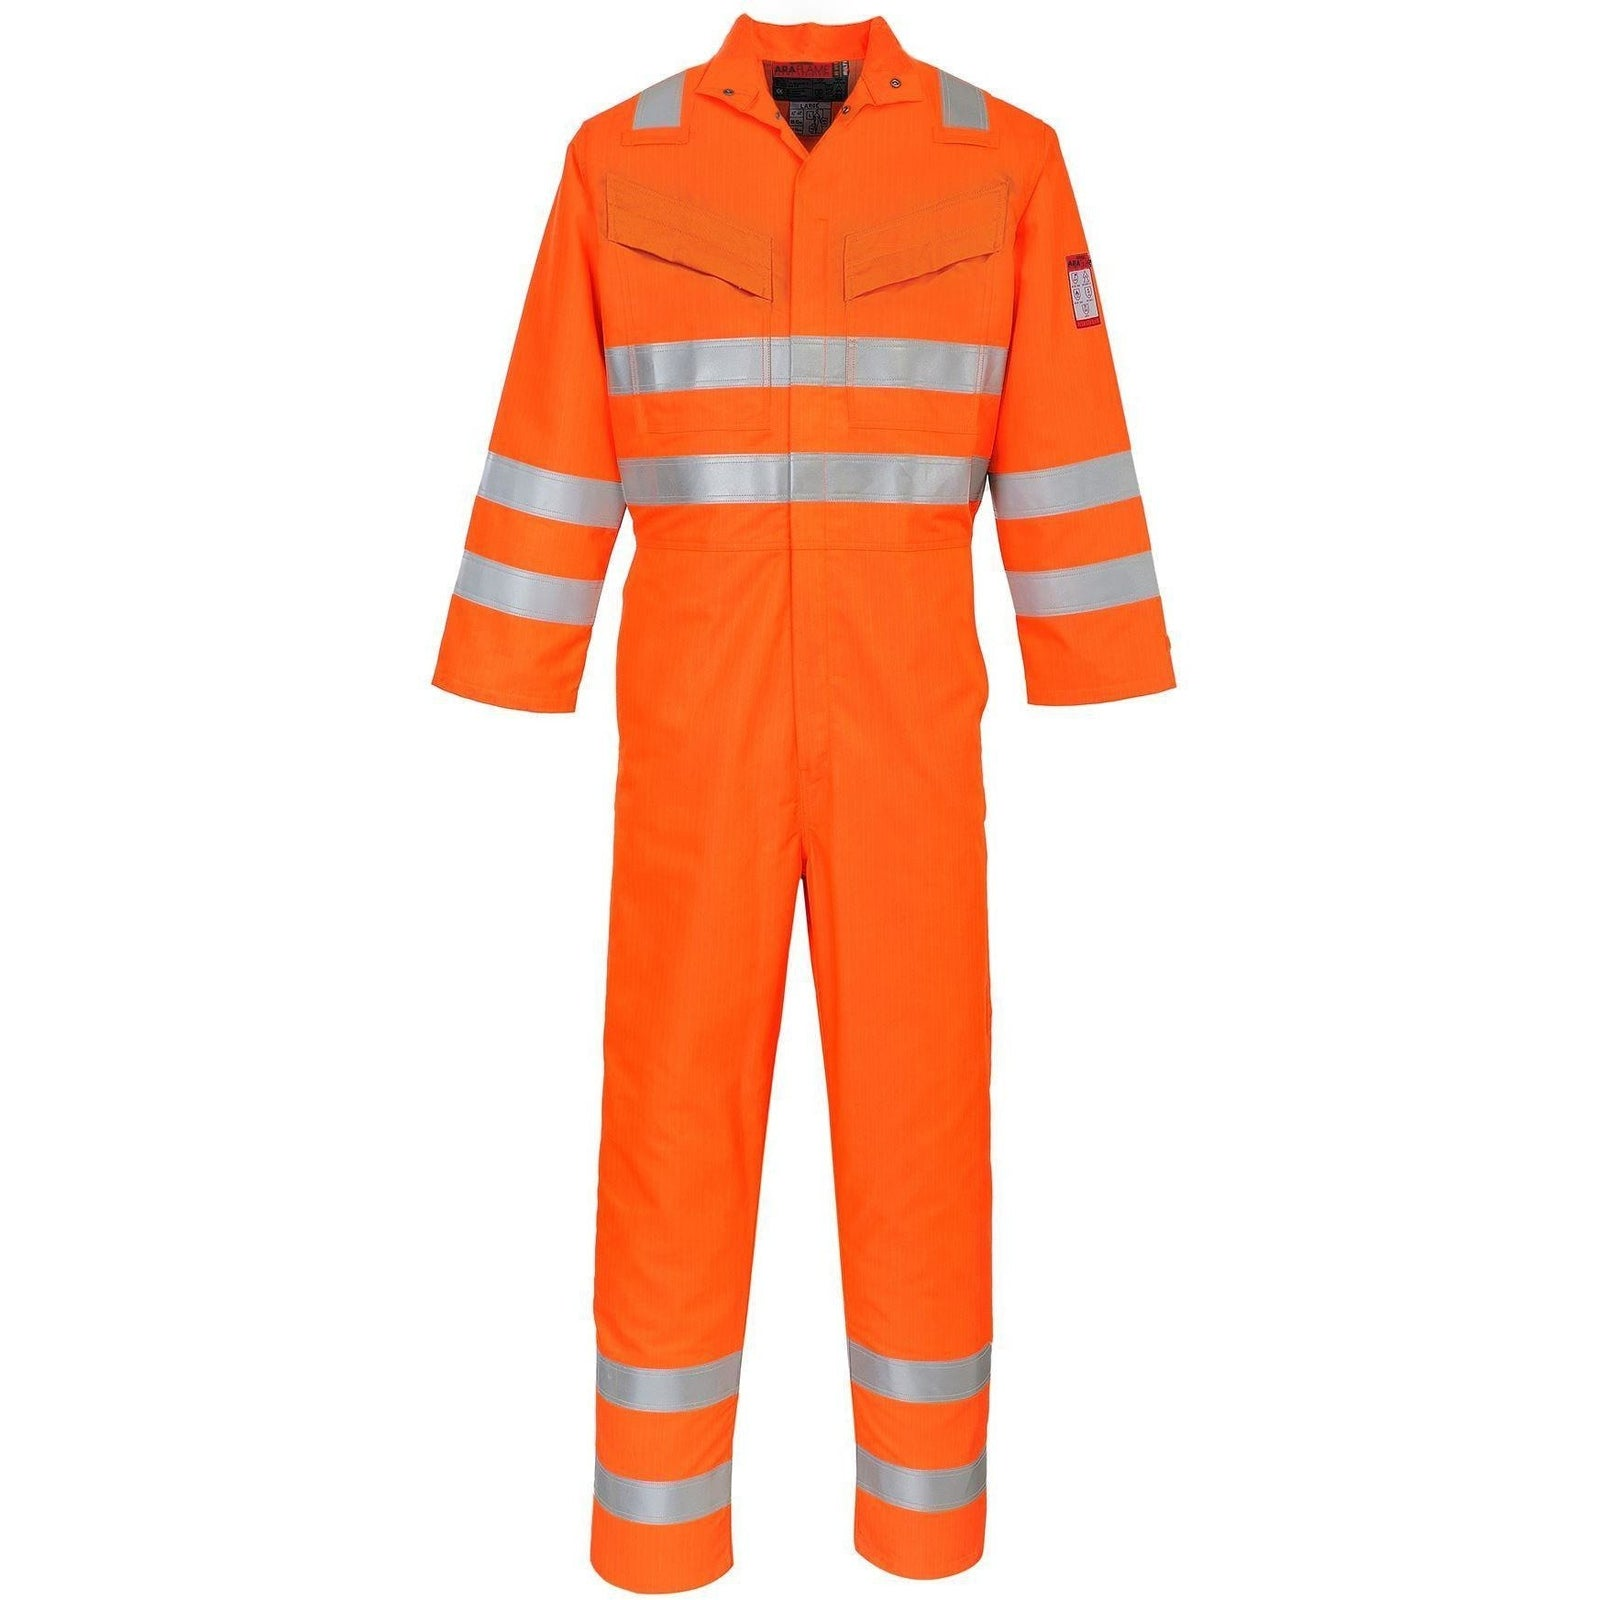 Araflame Hi-Vis Coverall - reid outdoors